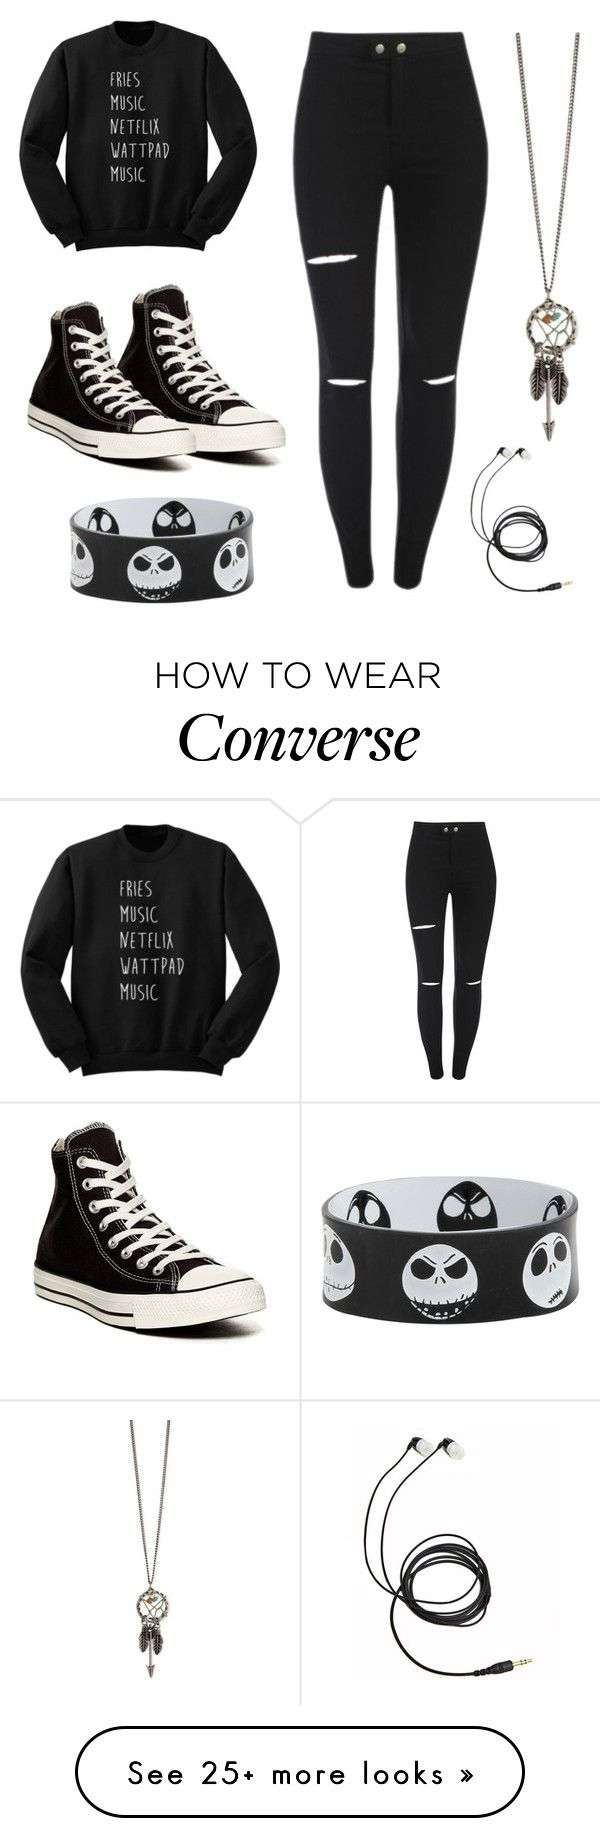 Best 25 Types Of Shoes Ideas On Pinterest Types Of Fashion Styles Types Of Heels And Types